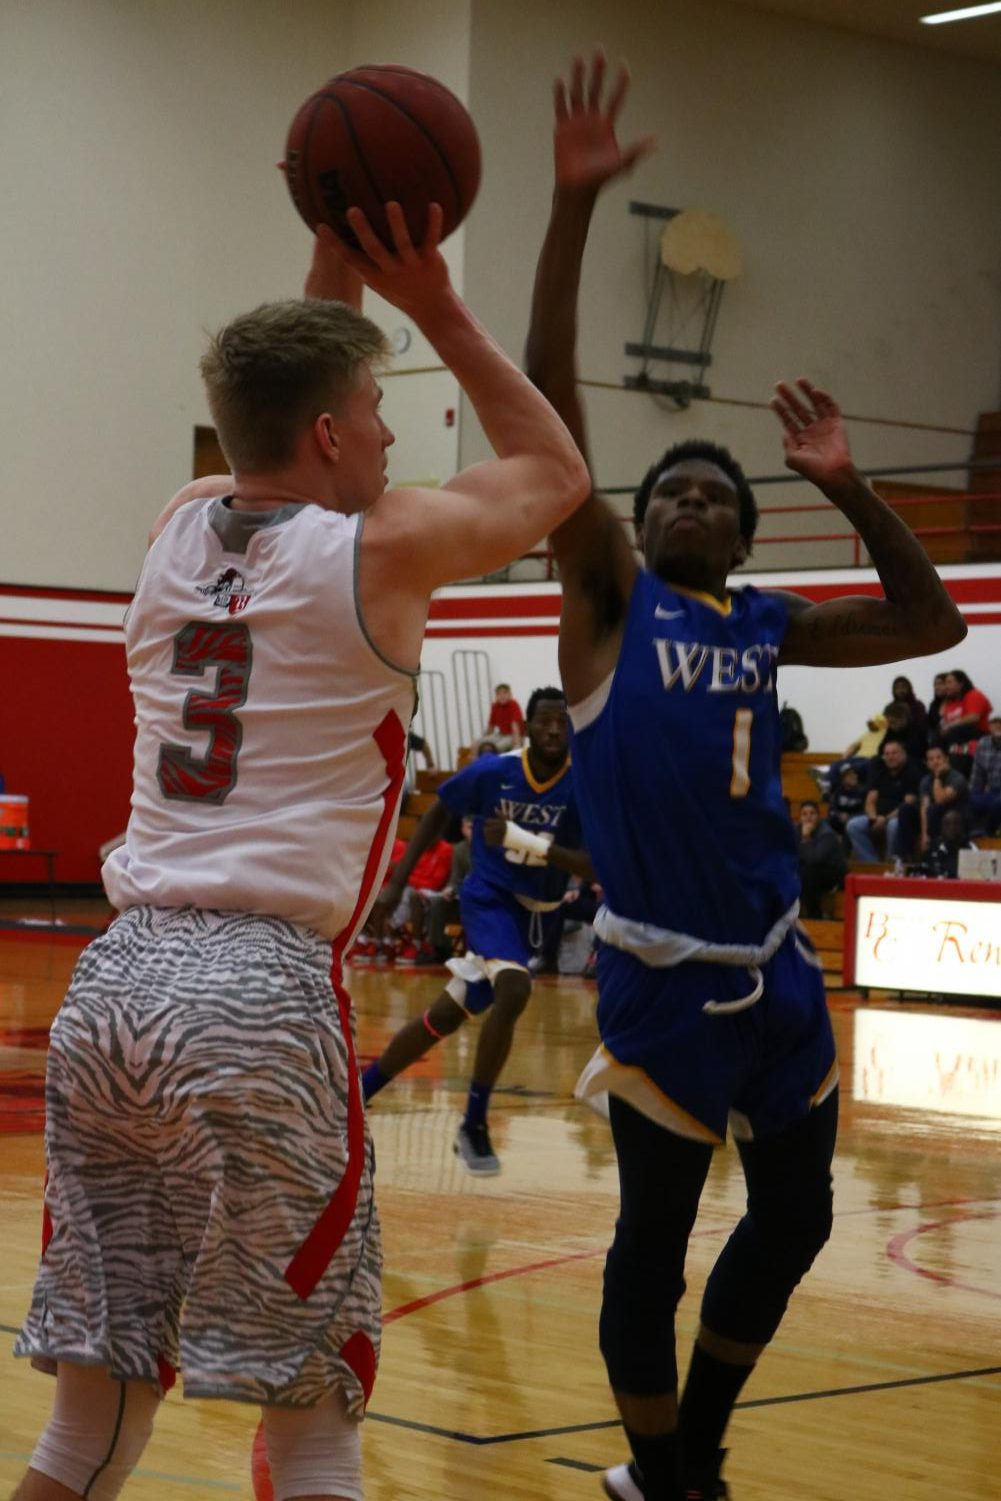 Bakersfield College basketball player Tucker Eenigenburg attempts to shoot and score for the Renegades as an opposing player from West LA tries to block him